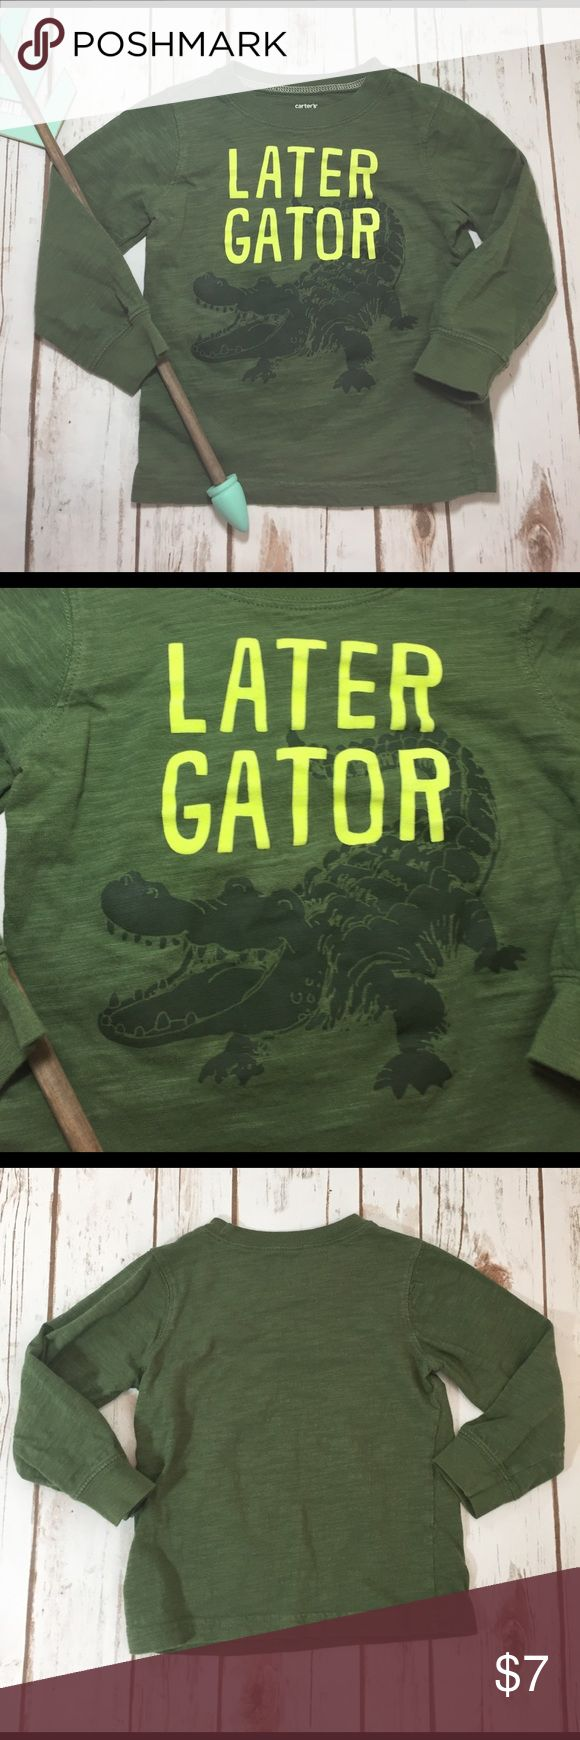 """Carter's """"Later Gator"""" green long sleeved top 100% cotton and in great condition Carter's Shirts & Tops Tees - Long Sleeve"""